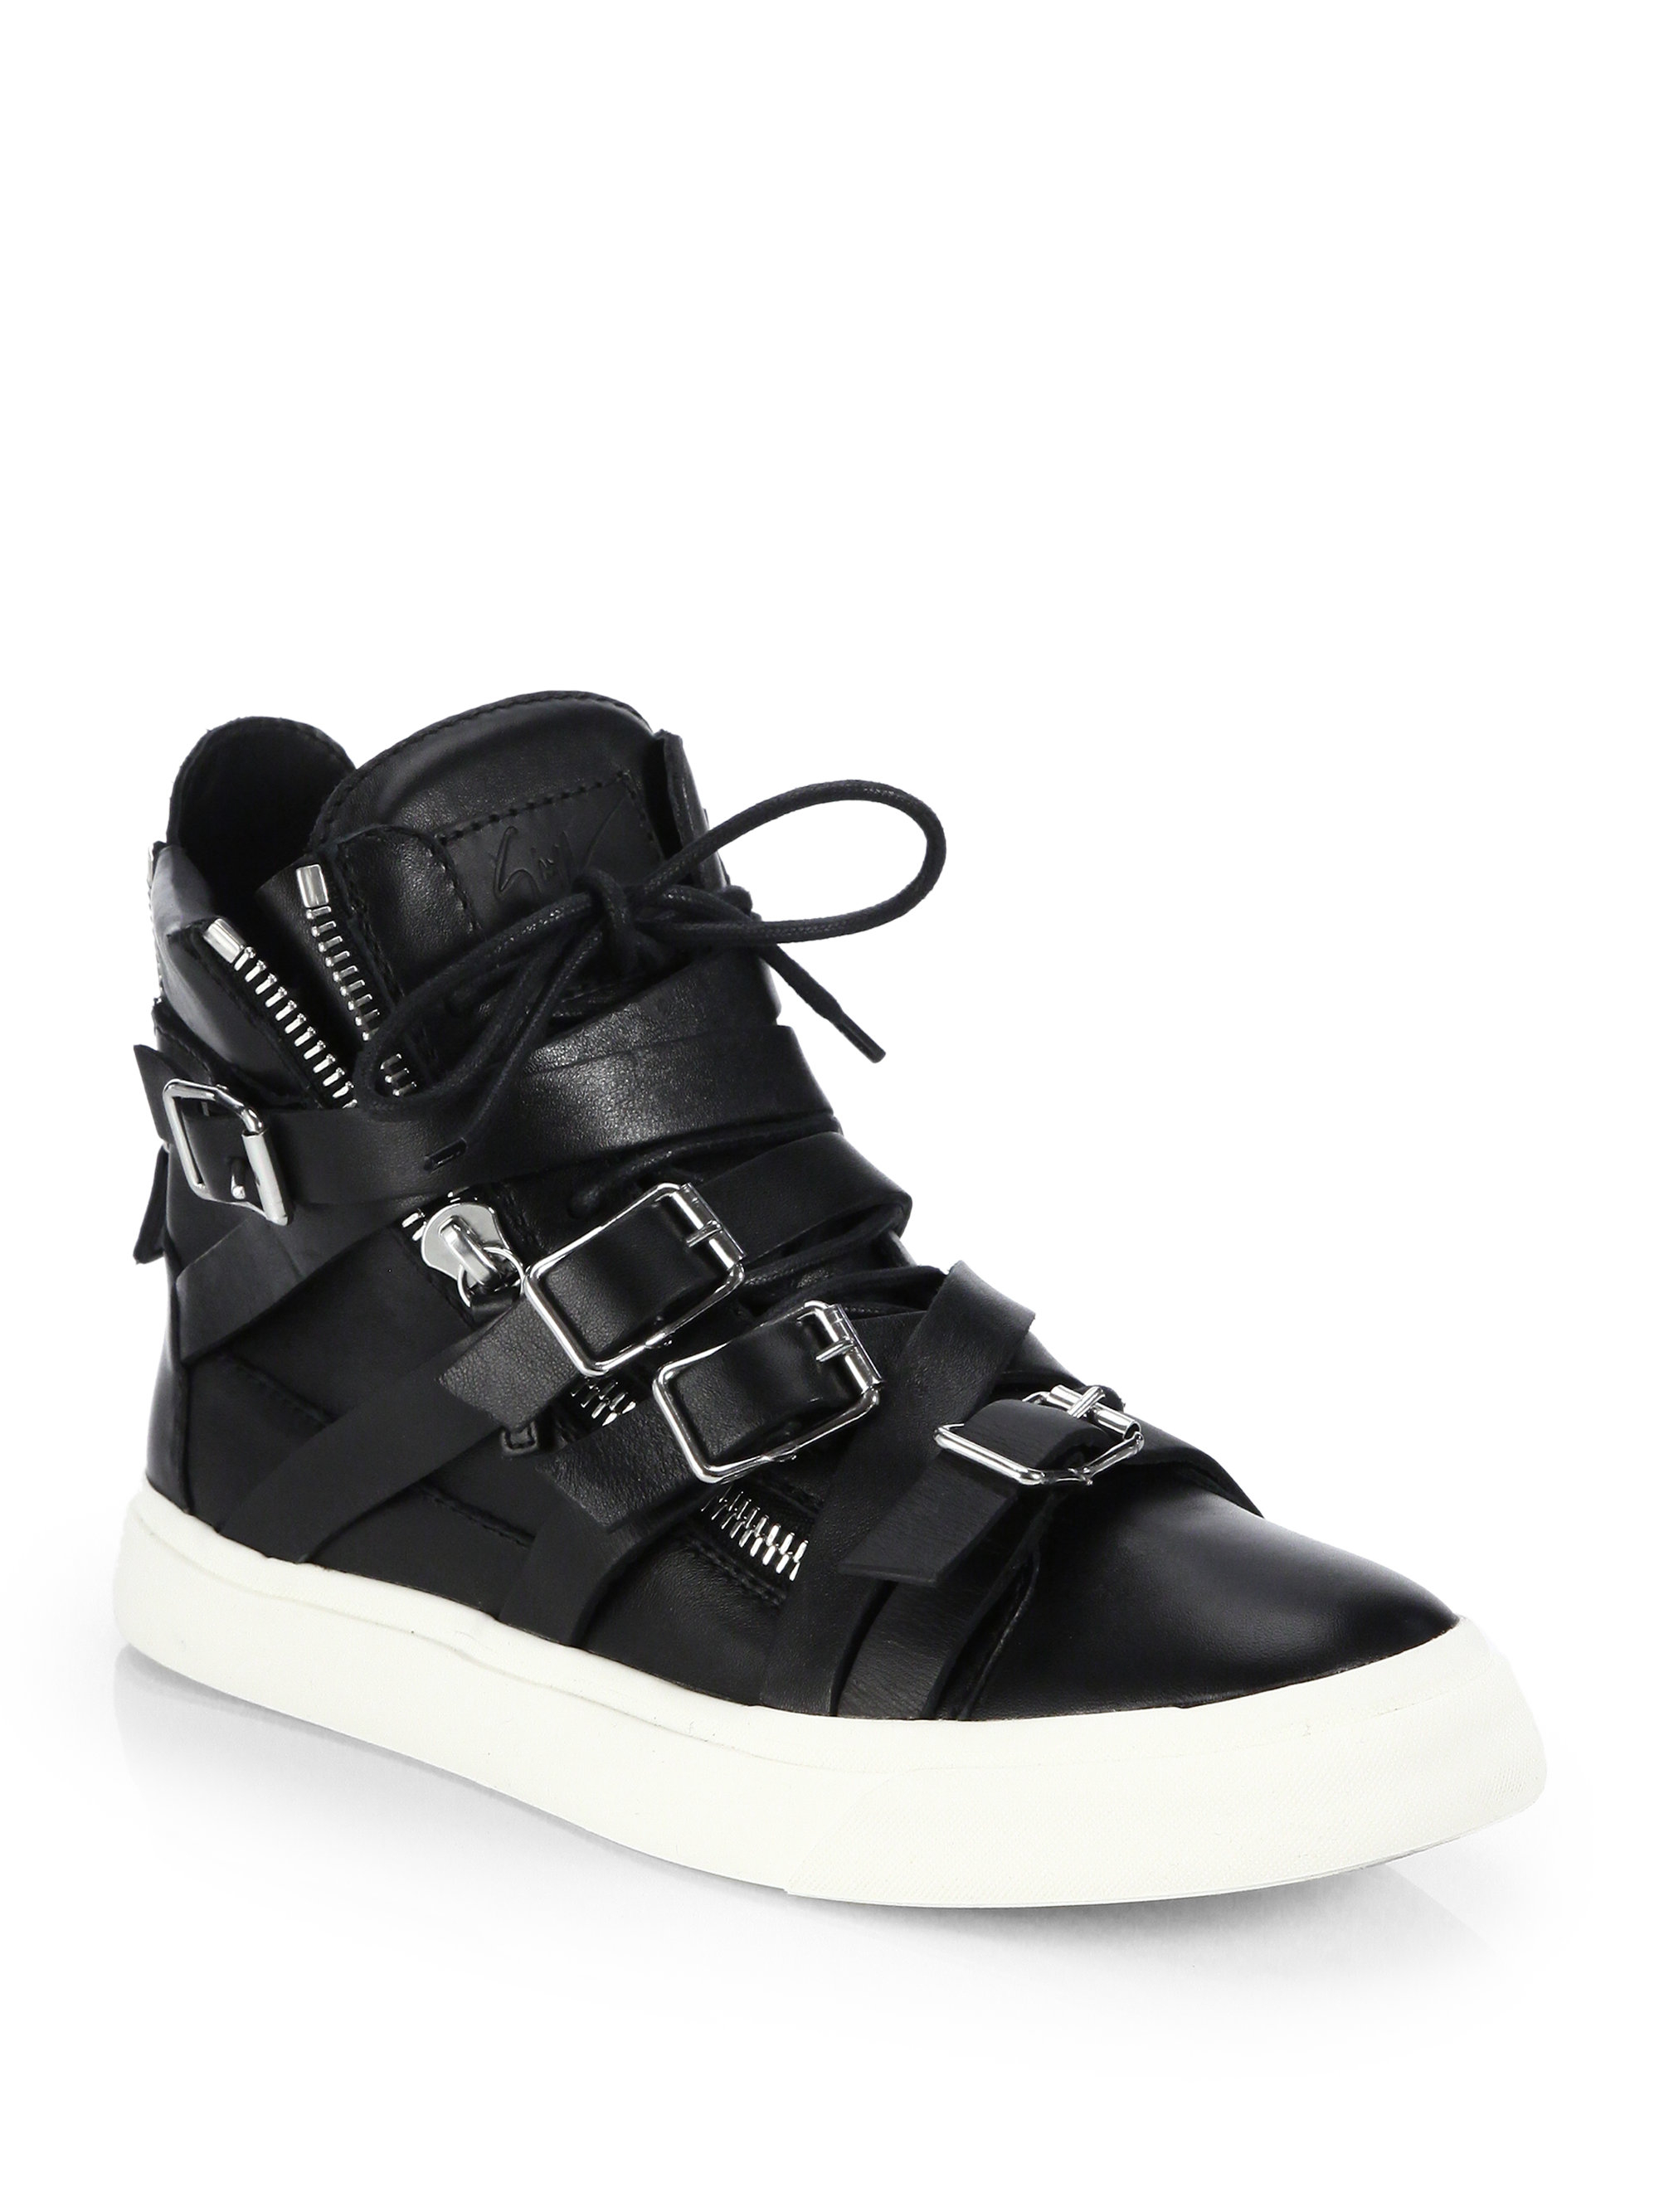 Mens High Top Shoes With Straps